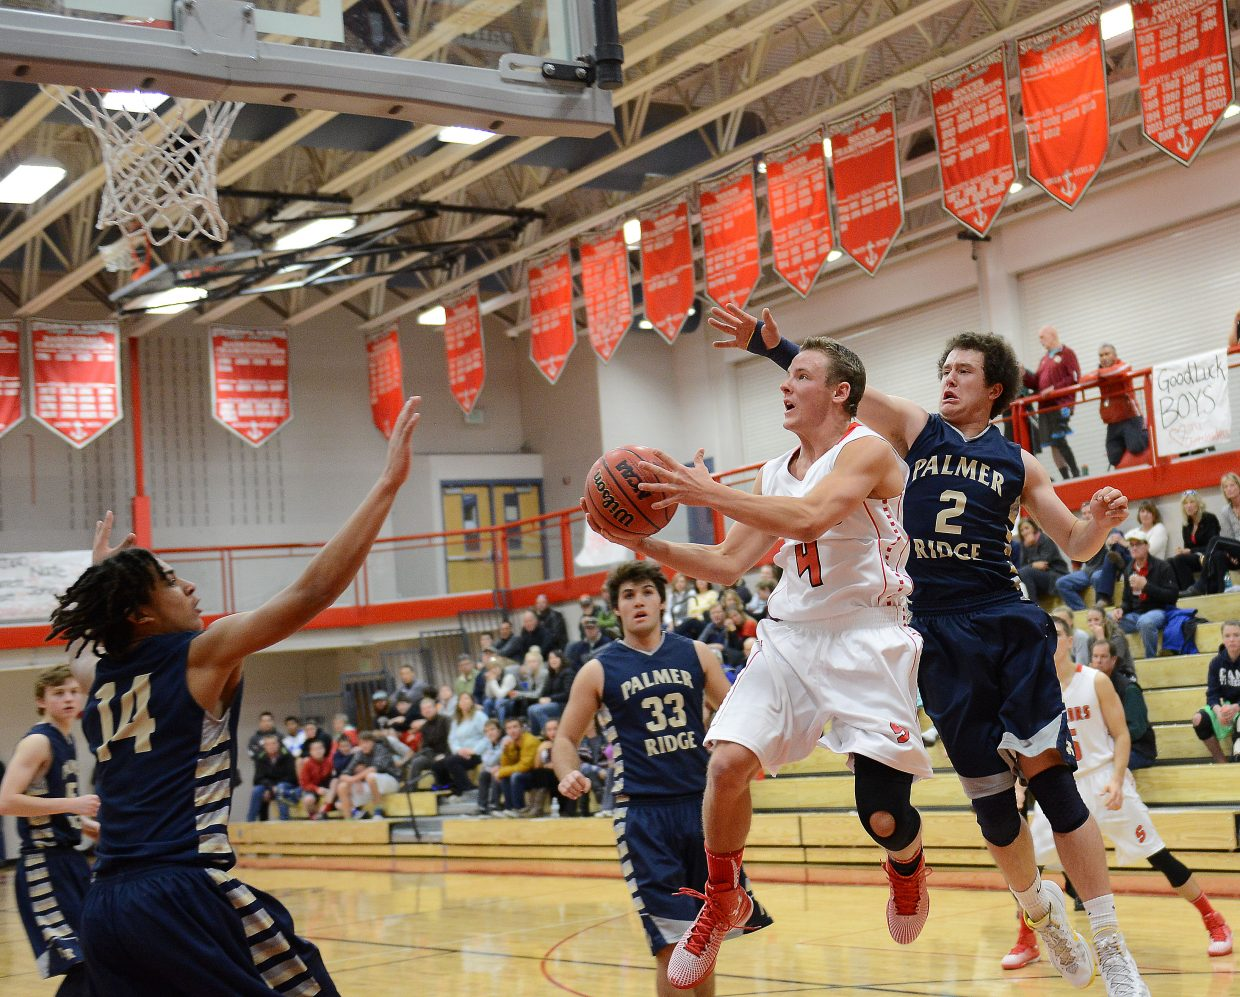 Mitch McCannon drives the baseline Saturday against Palmer Ridge. He scored and drew a foul on the play, helping Steamboat pull close in the game.